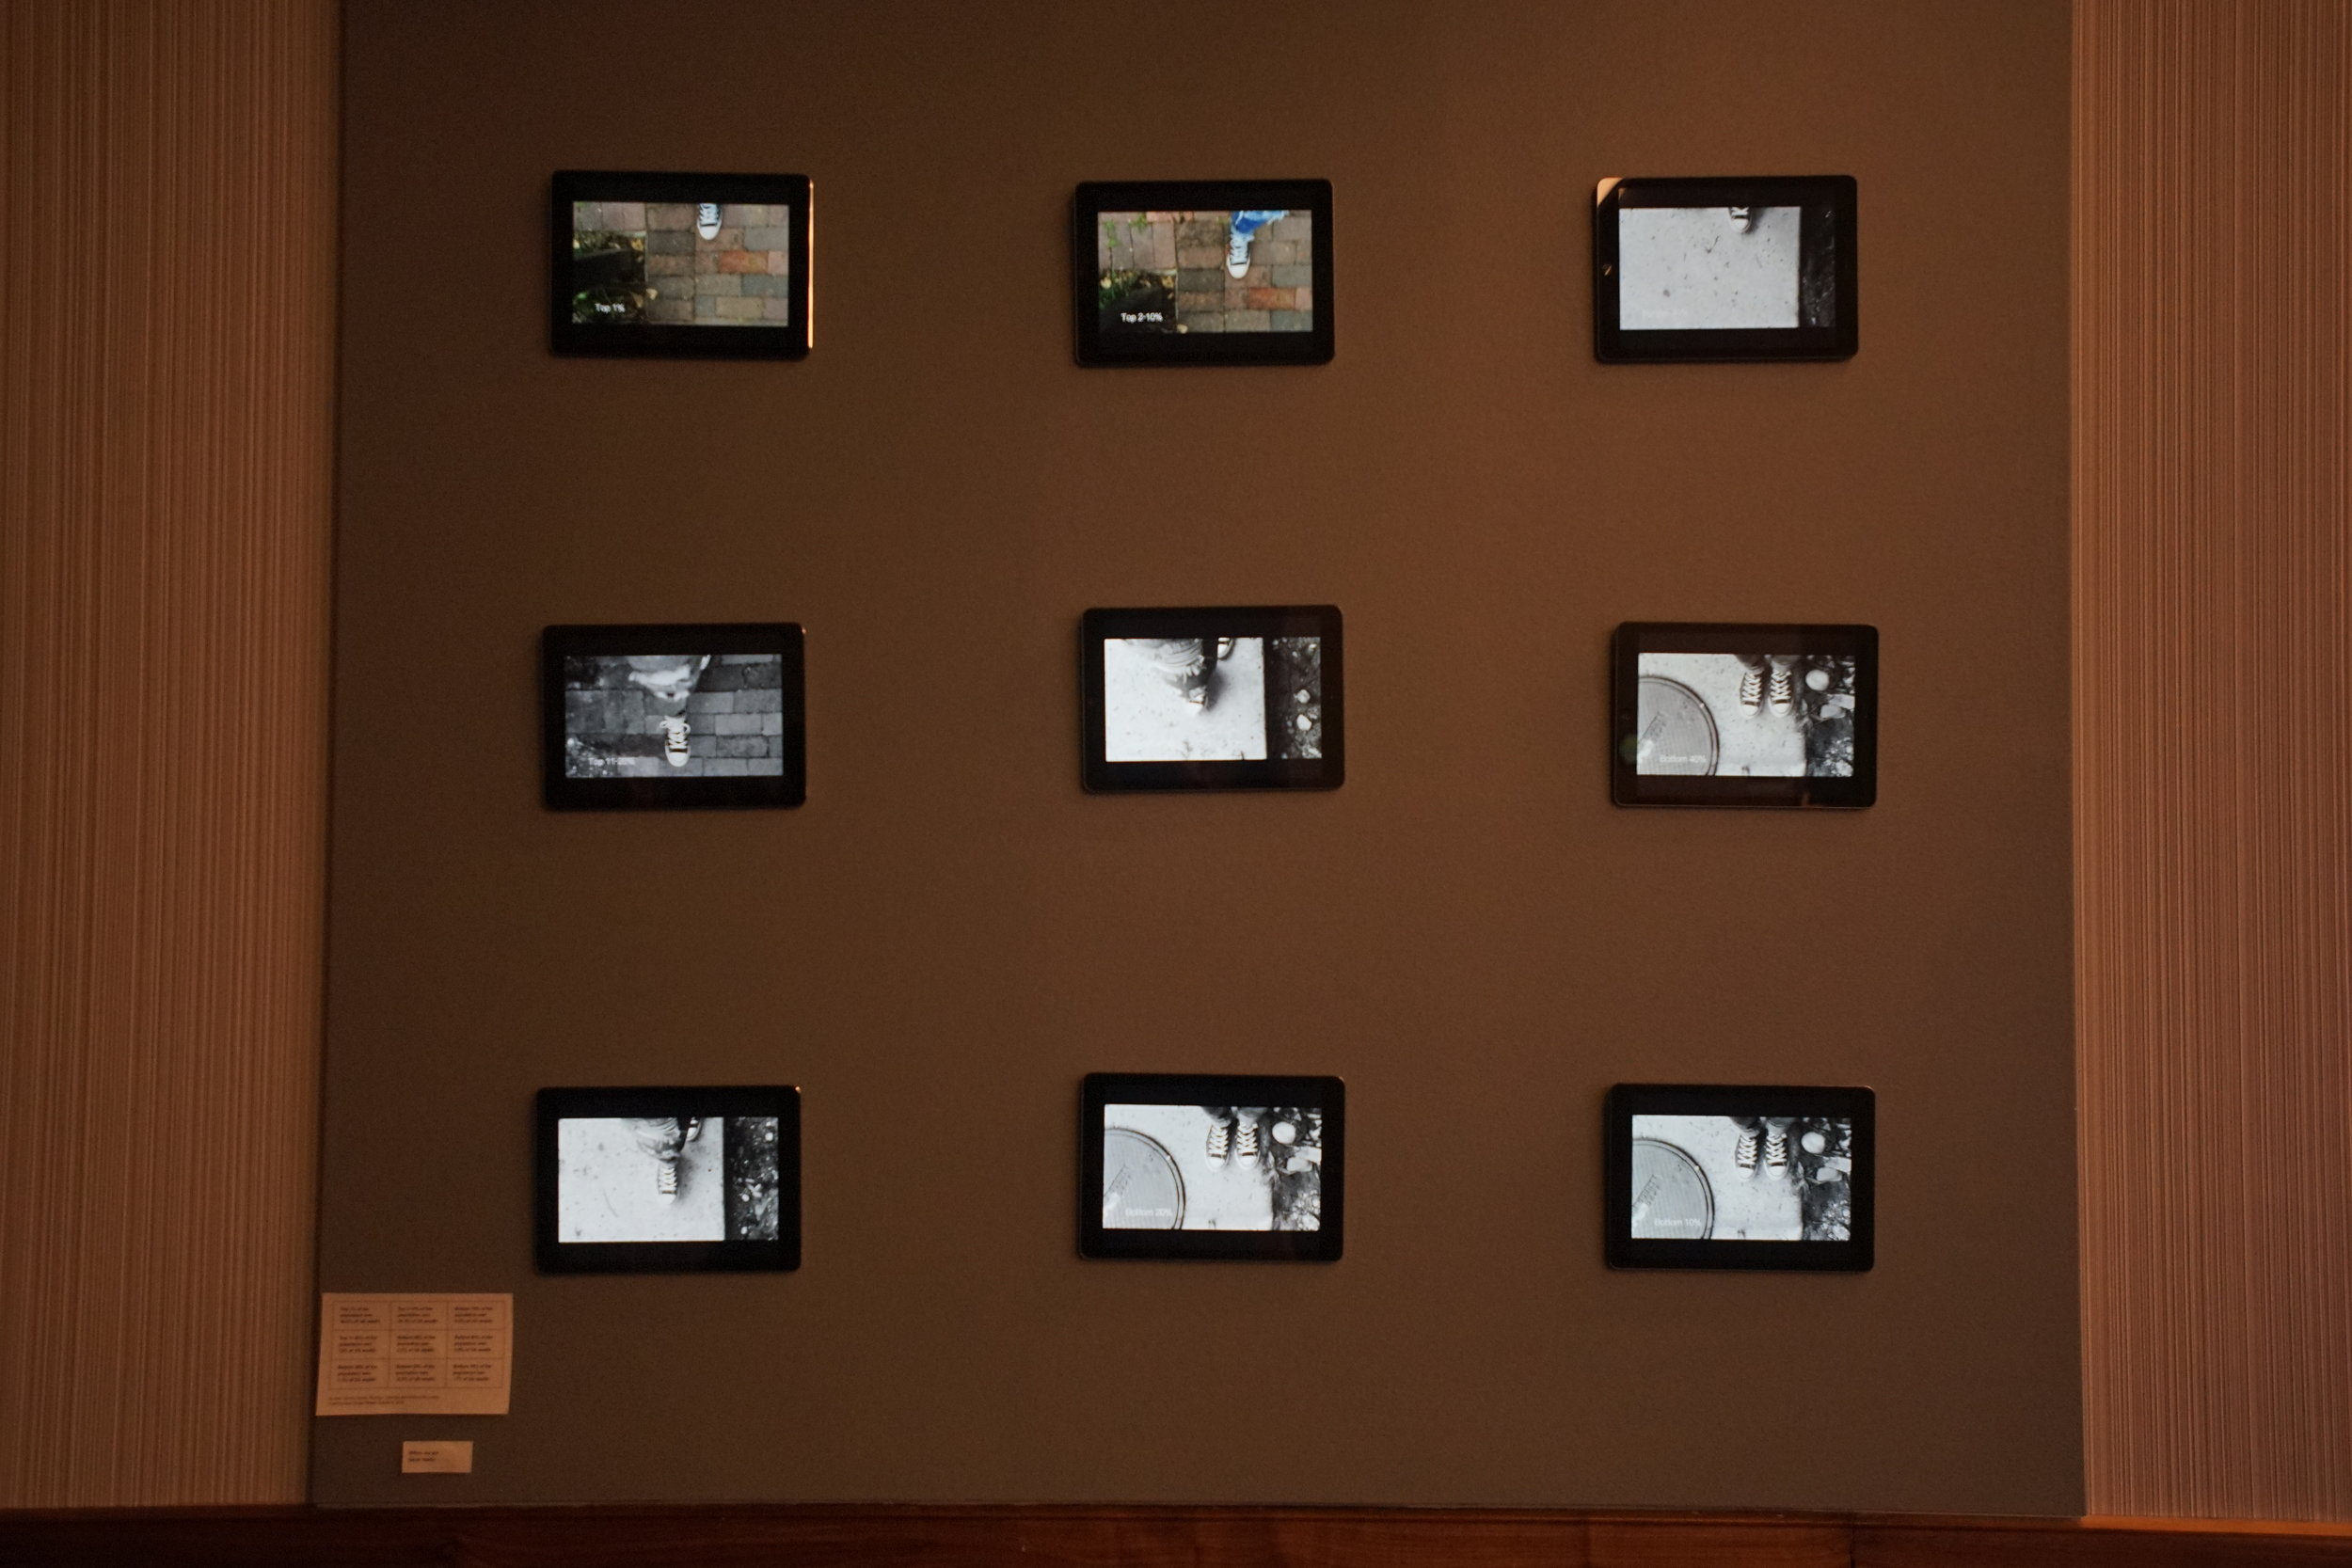 SARAH MARTIN - WHERE WE ARE   Series of short films.     Where We Are  displayed nine different i-pads with different short films. All of these films we displays of the same shoes walking but in different locations, speeds, and visual styles.